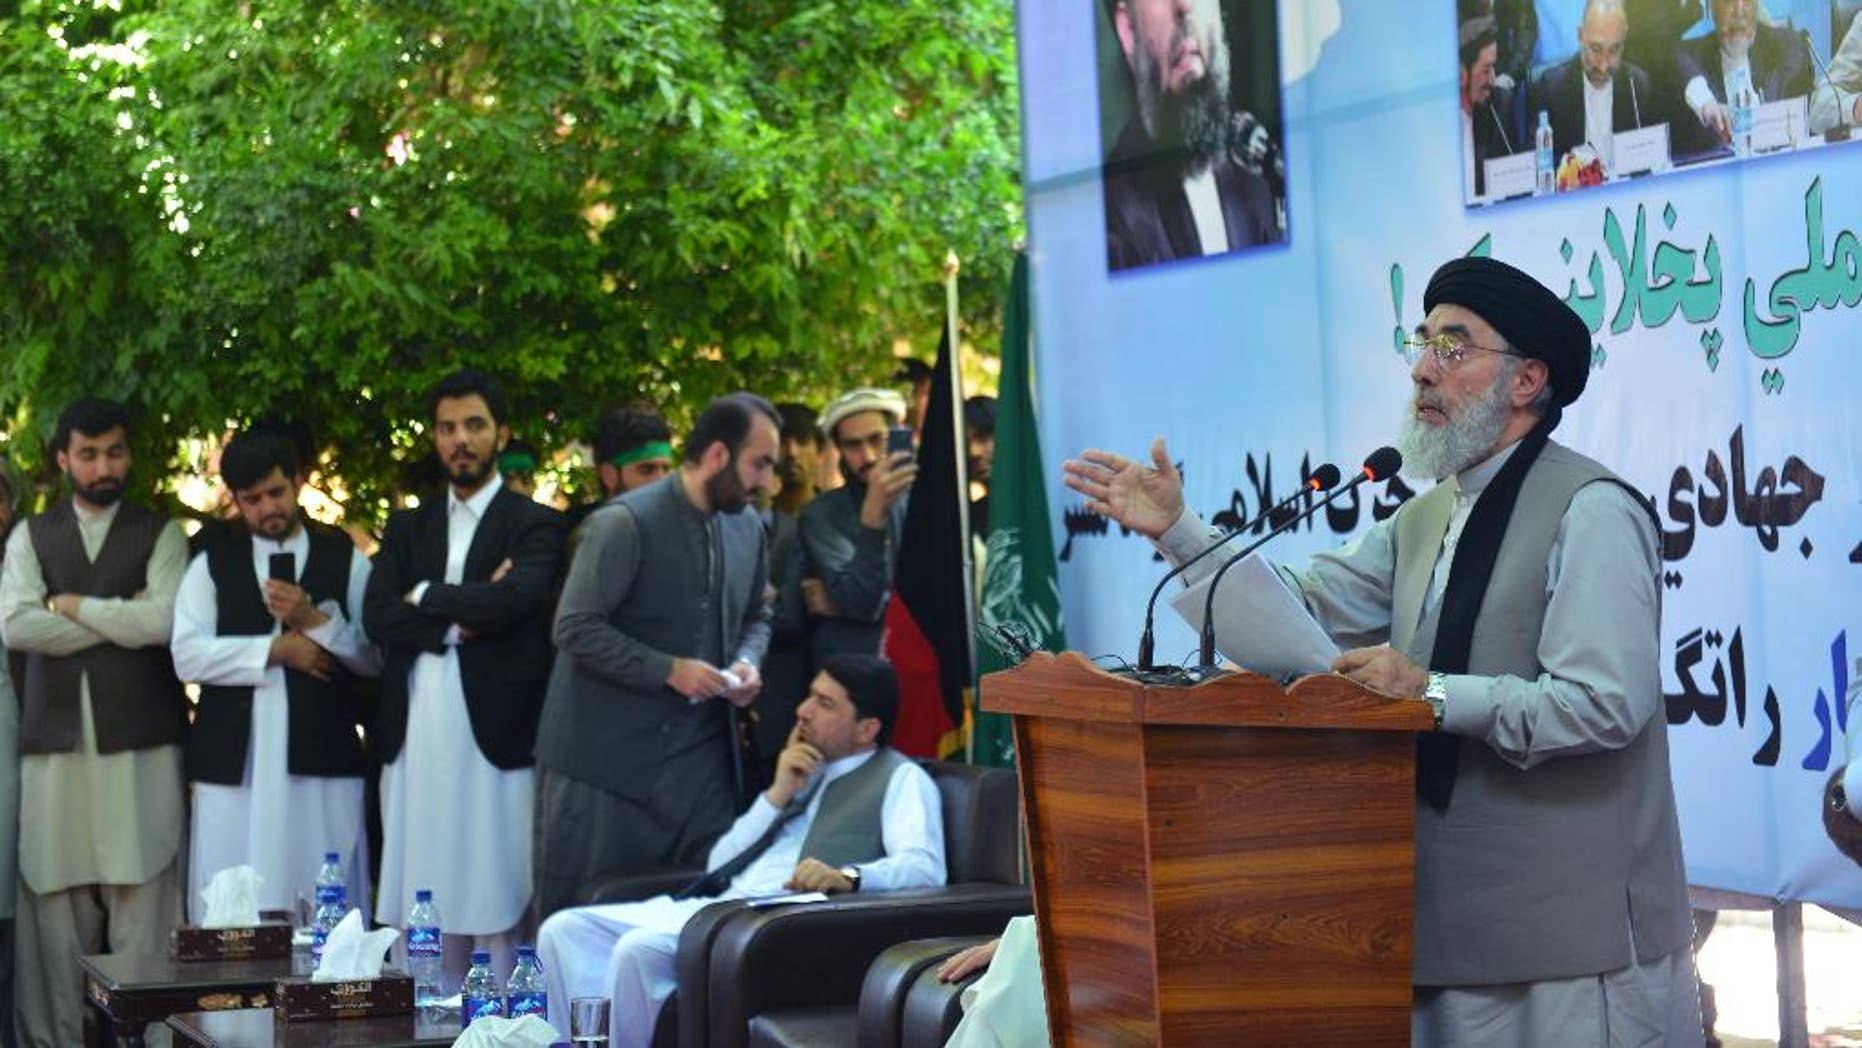 Warlord Gulbuddin Hekmatyar speaking in Mihtarlam city, the capital of eastern Laghman province, Afghanistan, on Saturday.